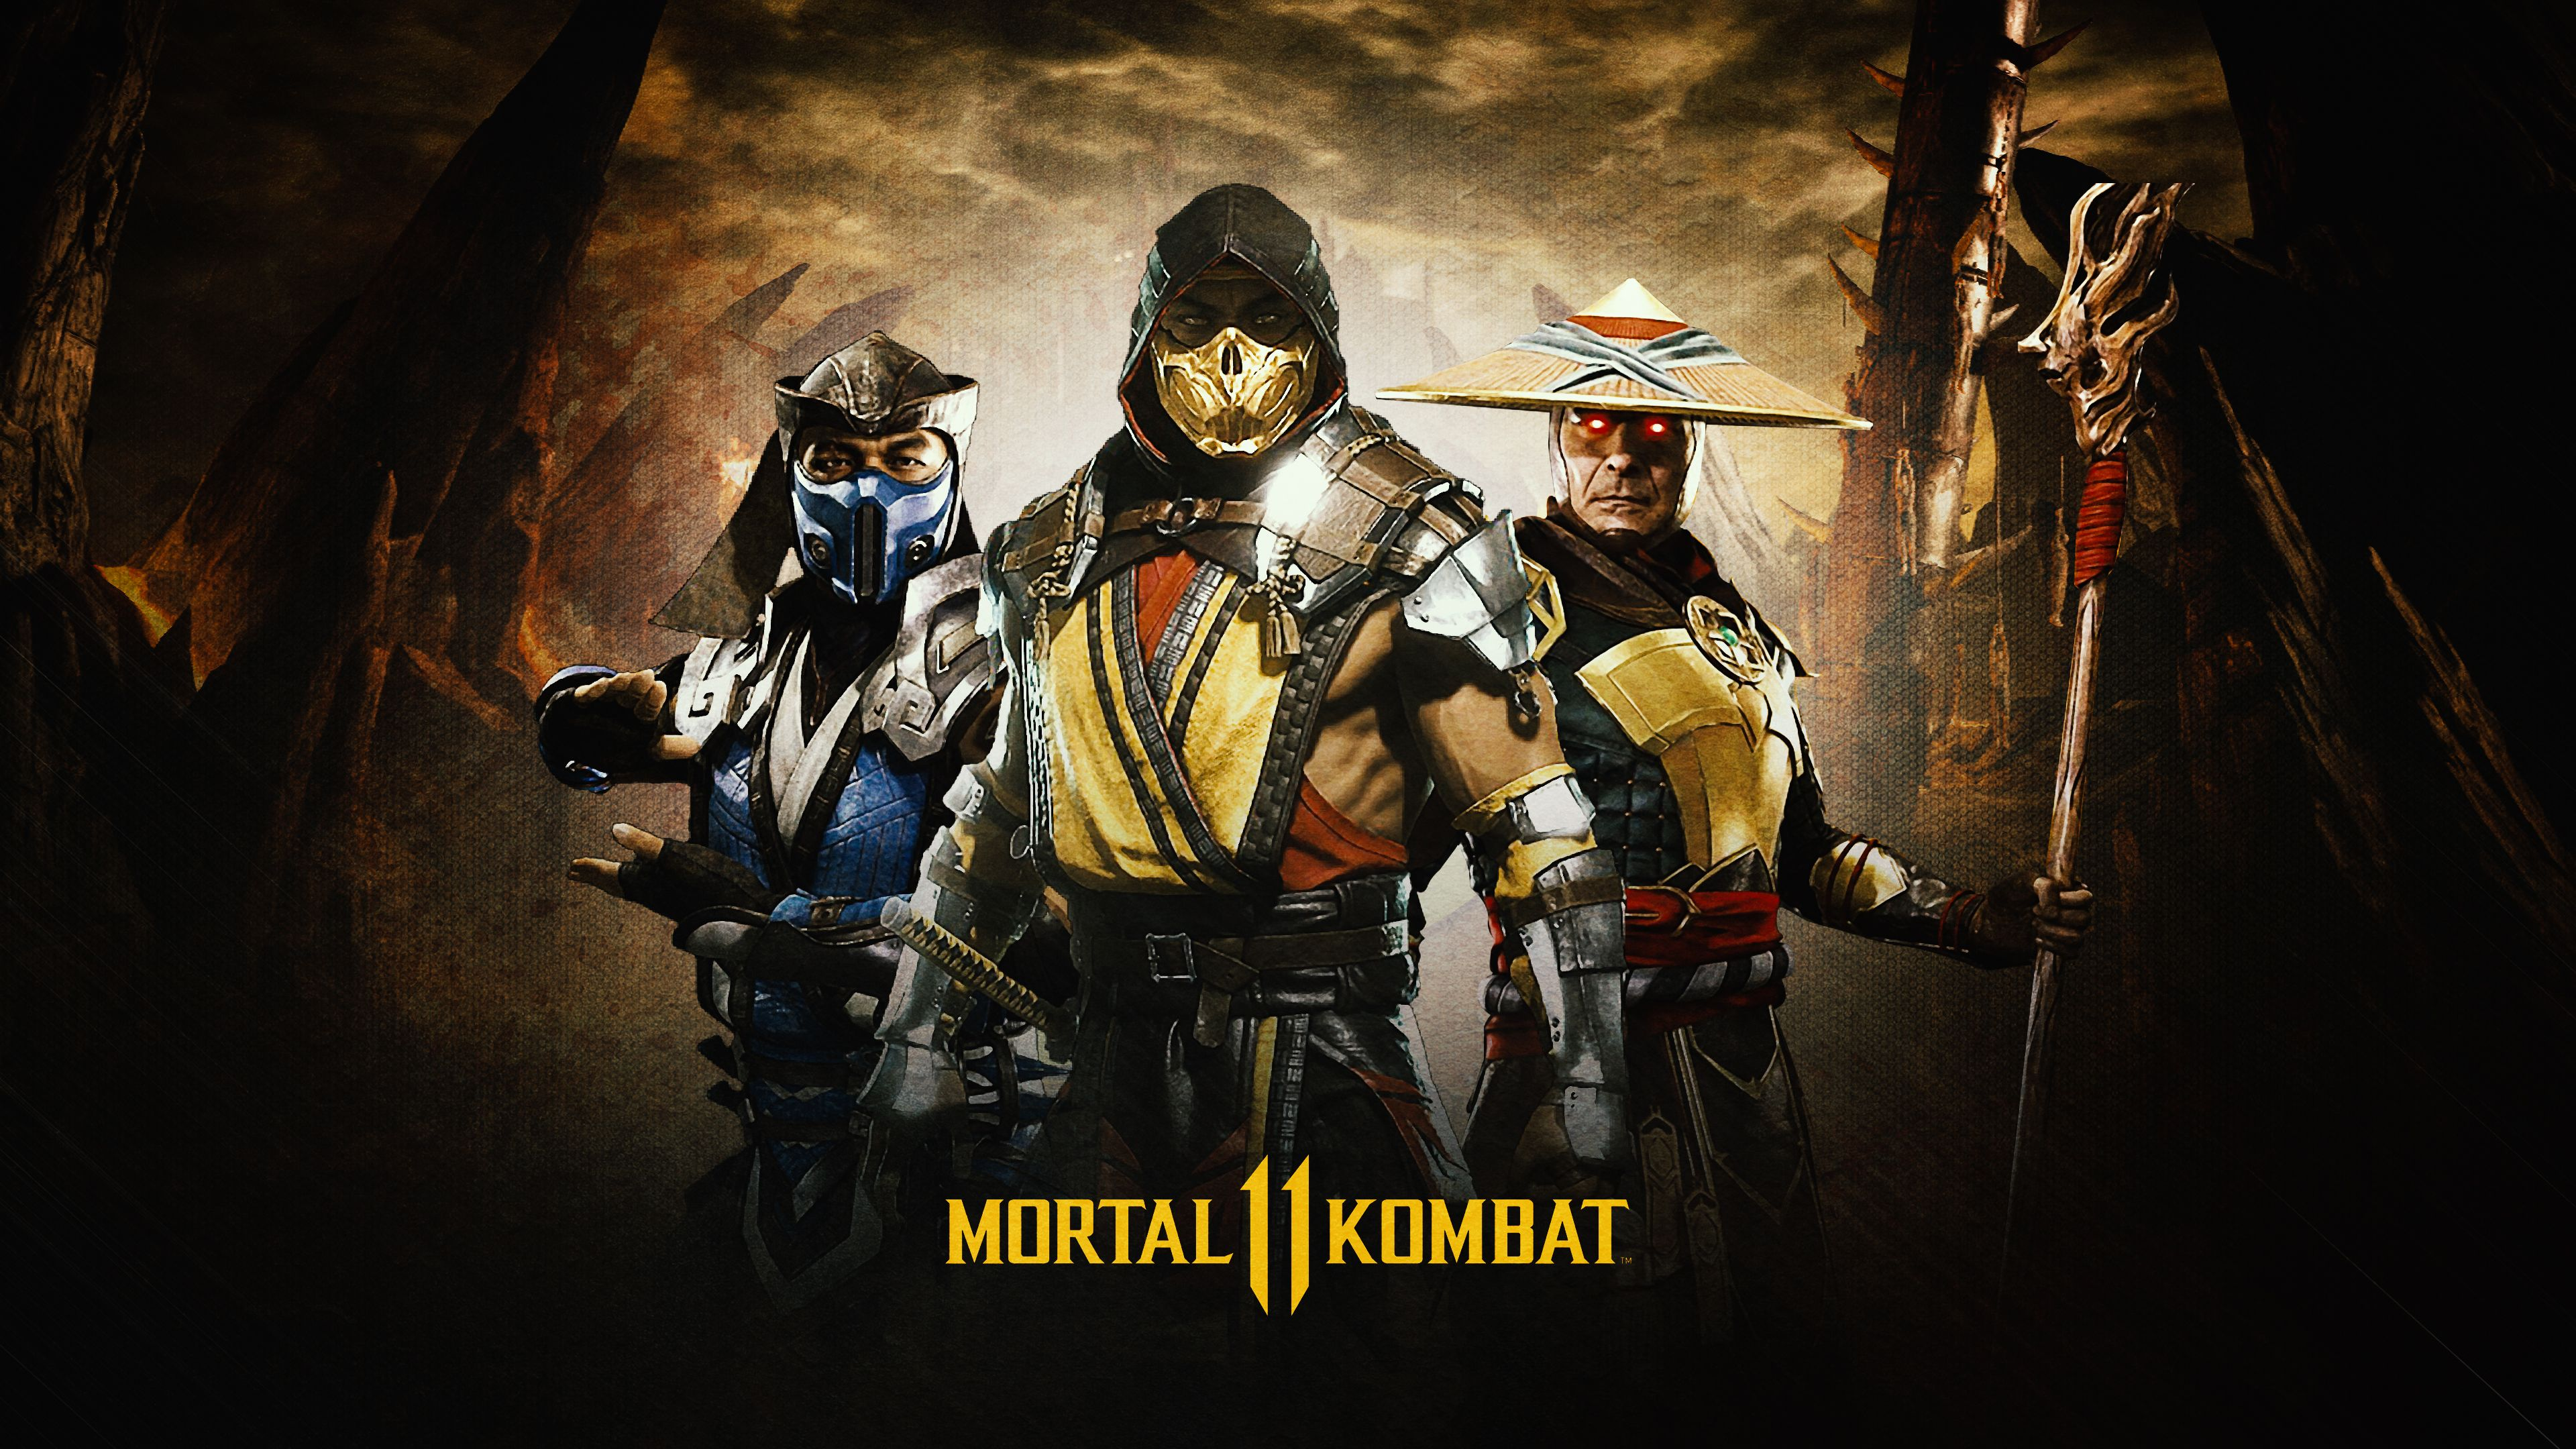 ultra hd mortal kombat 11 scorpion wallpaper